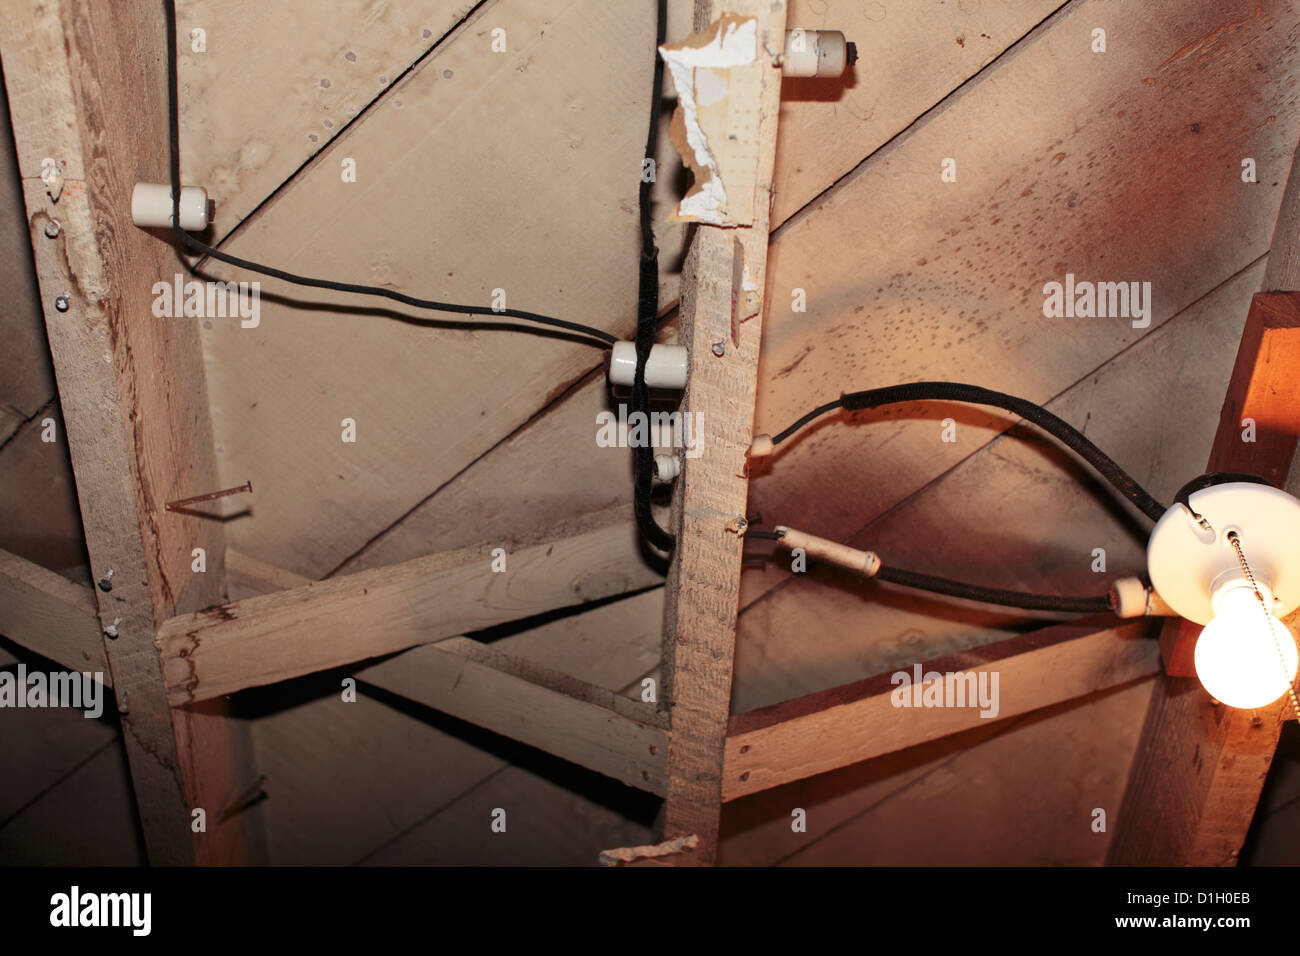 Old Wiring Stock Photos Images Alamy Light Knob And Tube Bulb Image